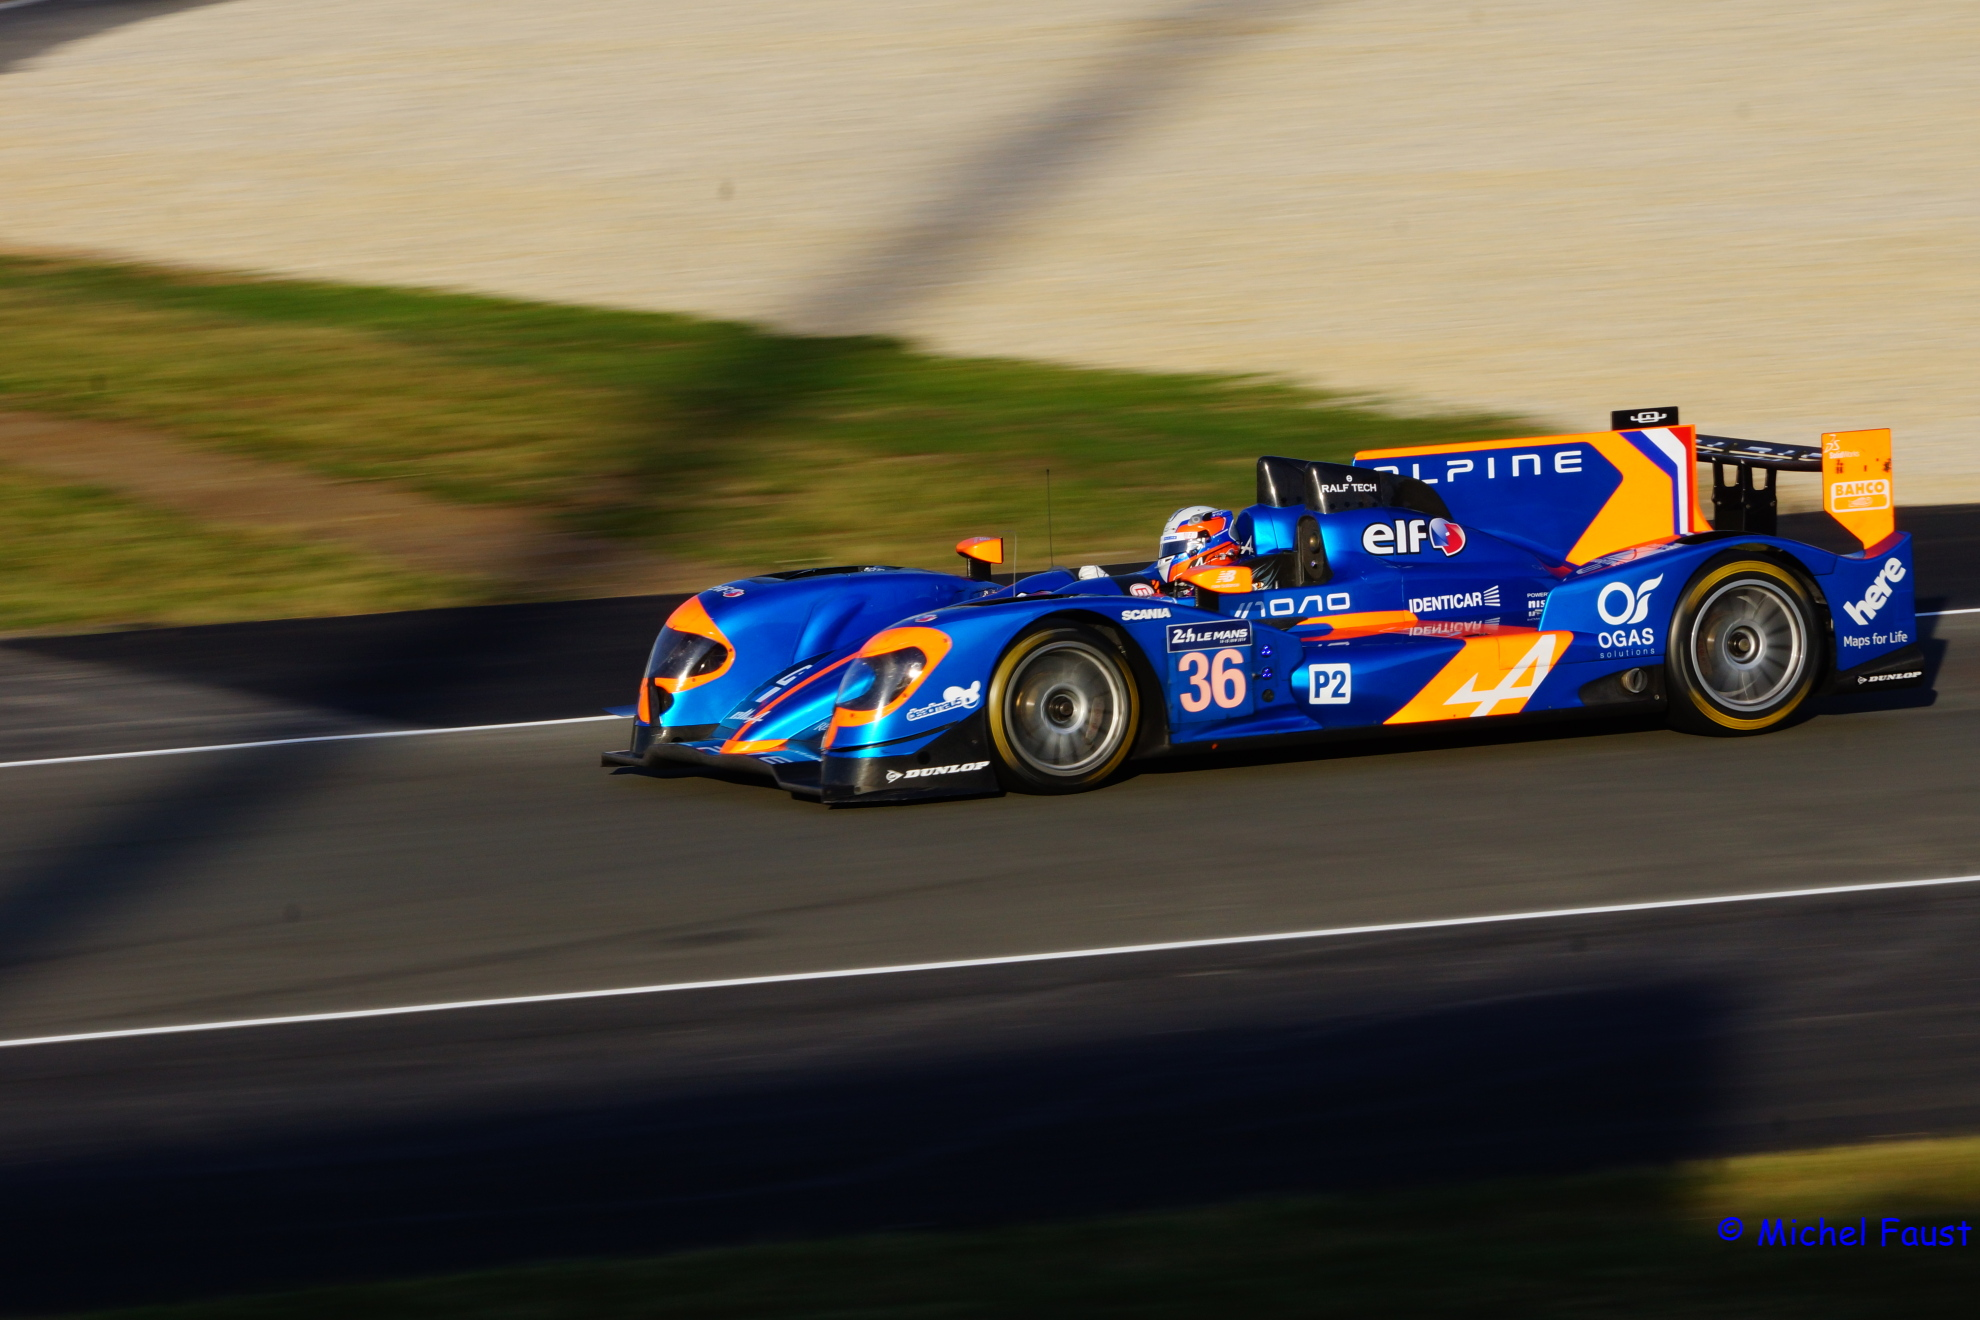 signatech alpine alpine a450 nissan chatin panciatici webb le mans 2014 essais 24. Black Bedroom Furniture Sets. Home Design Ideas